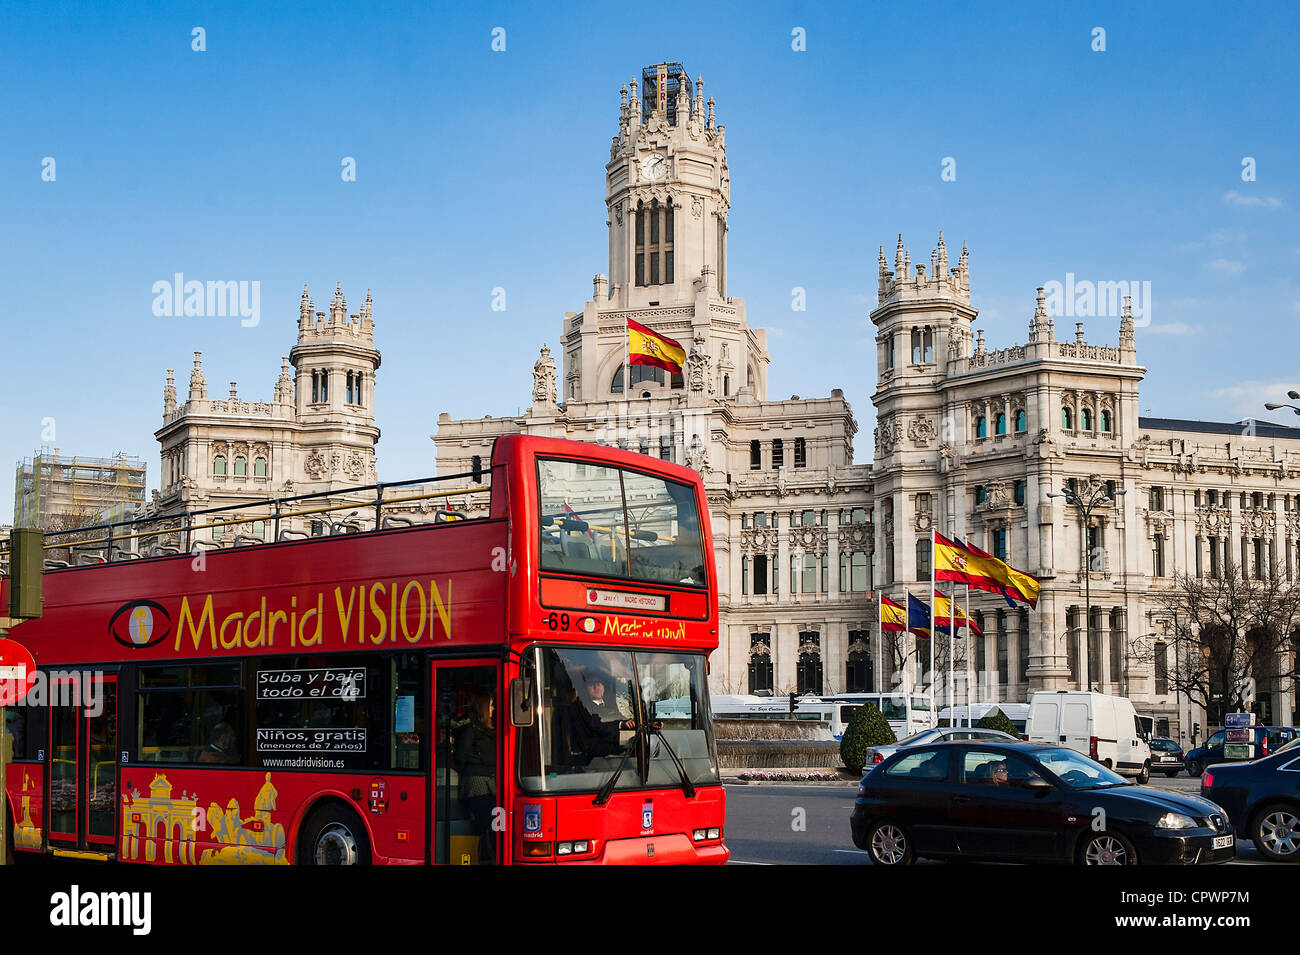 Madrid Vision-City-Tour-Bus am Plaza De La Cibeles in Madrid, Spanien Stockbild